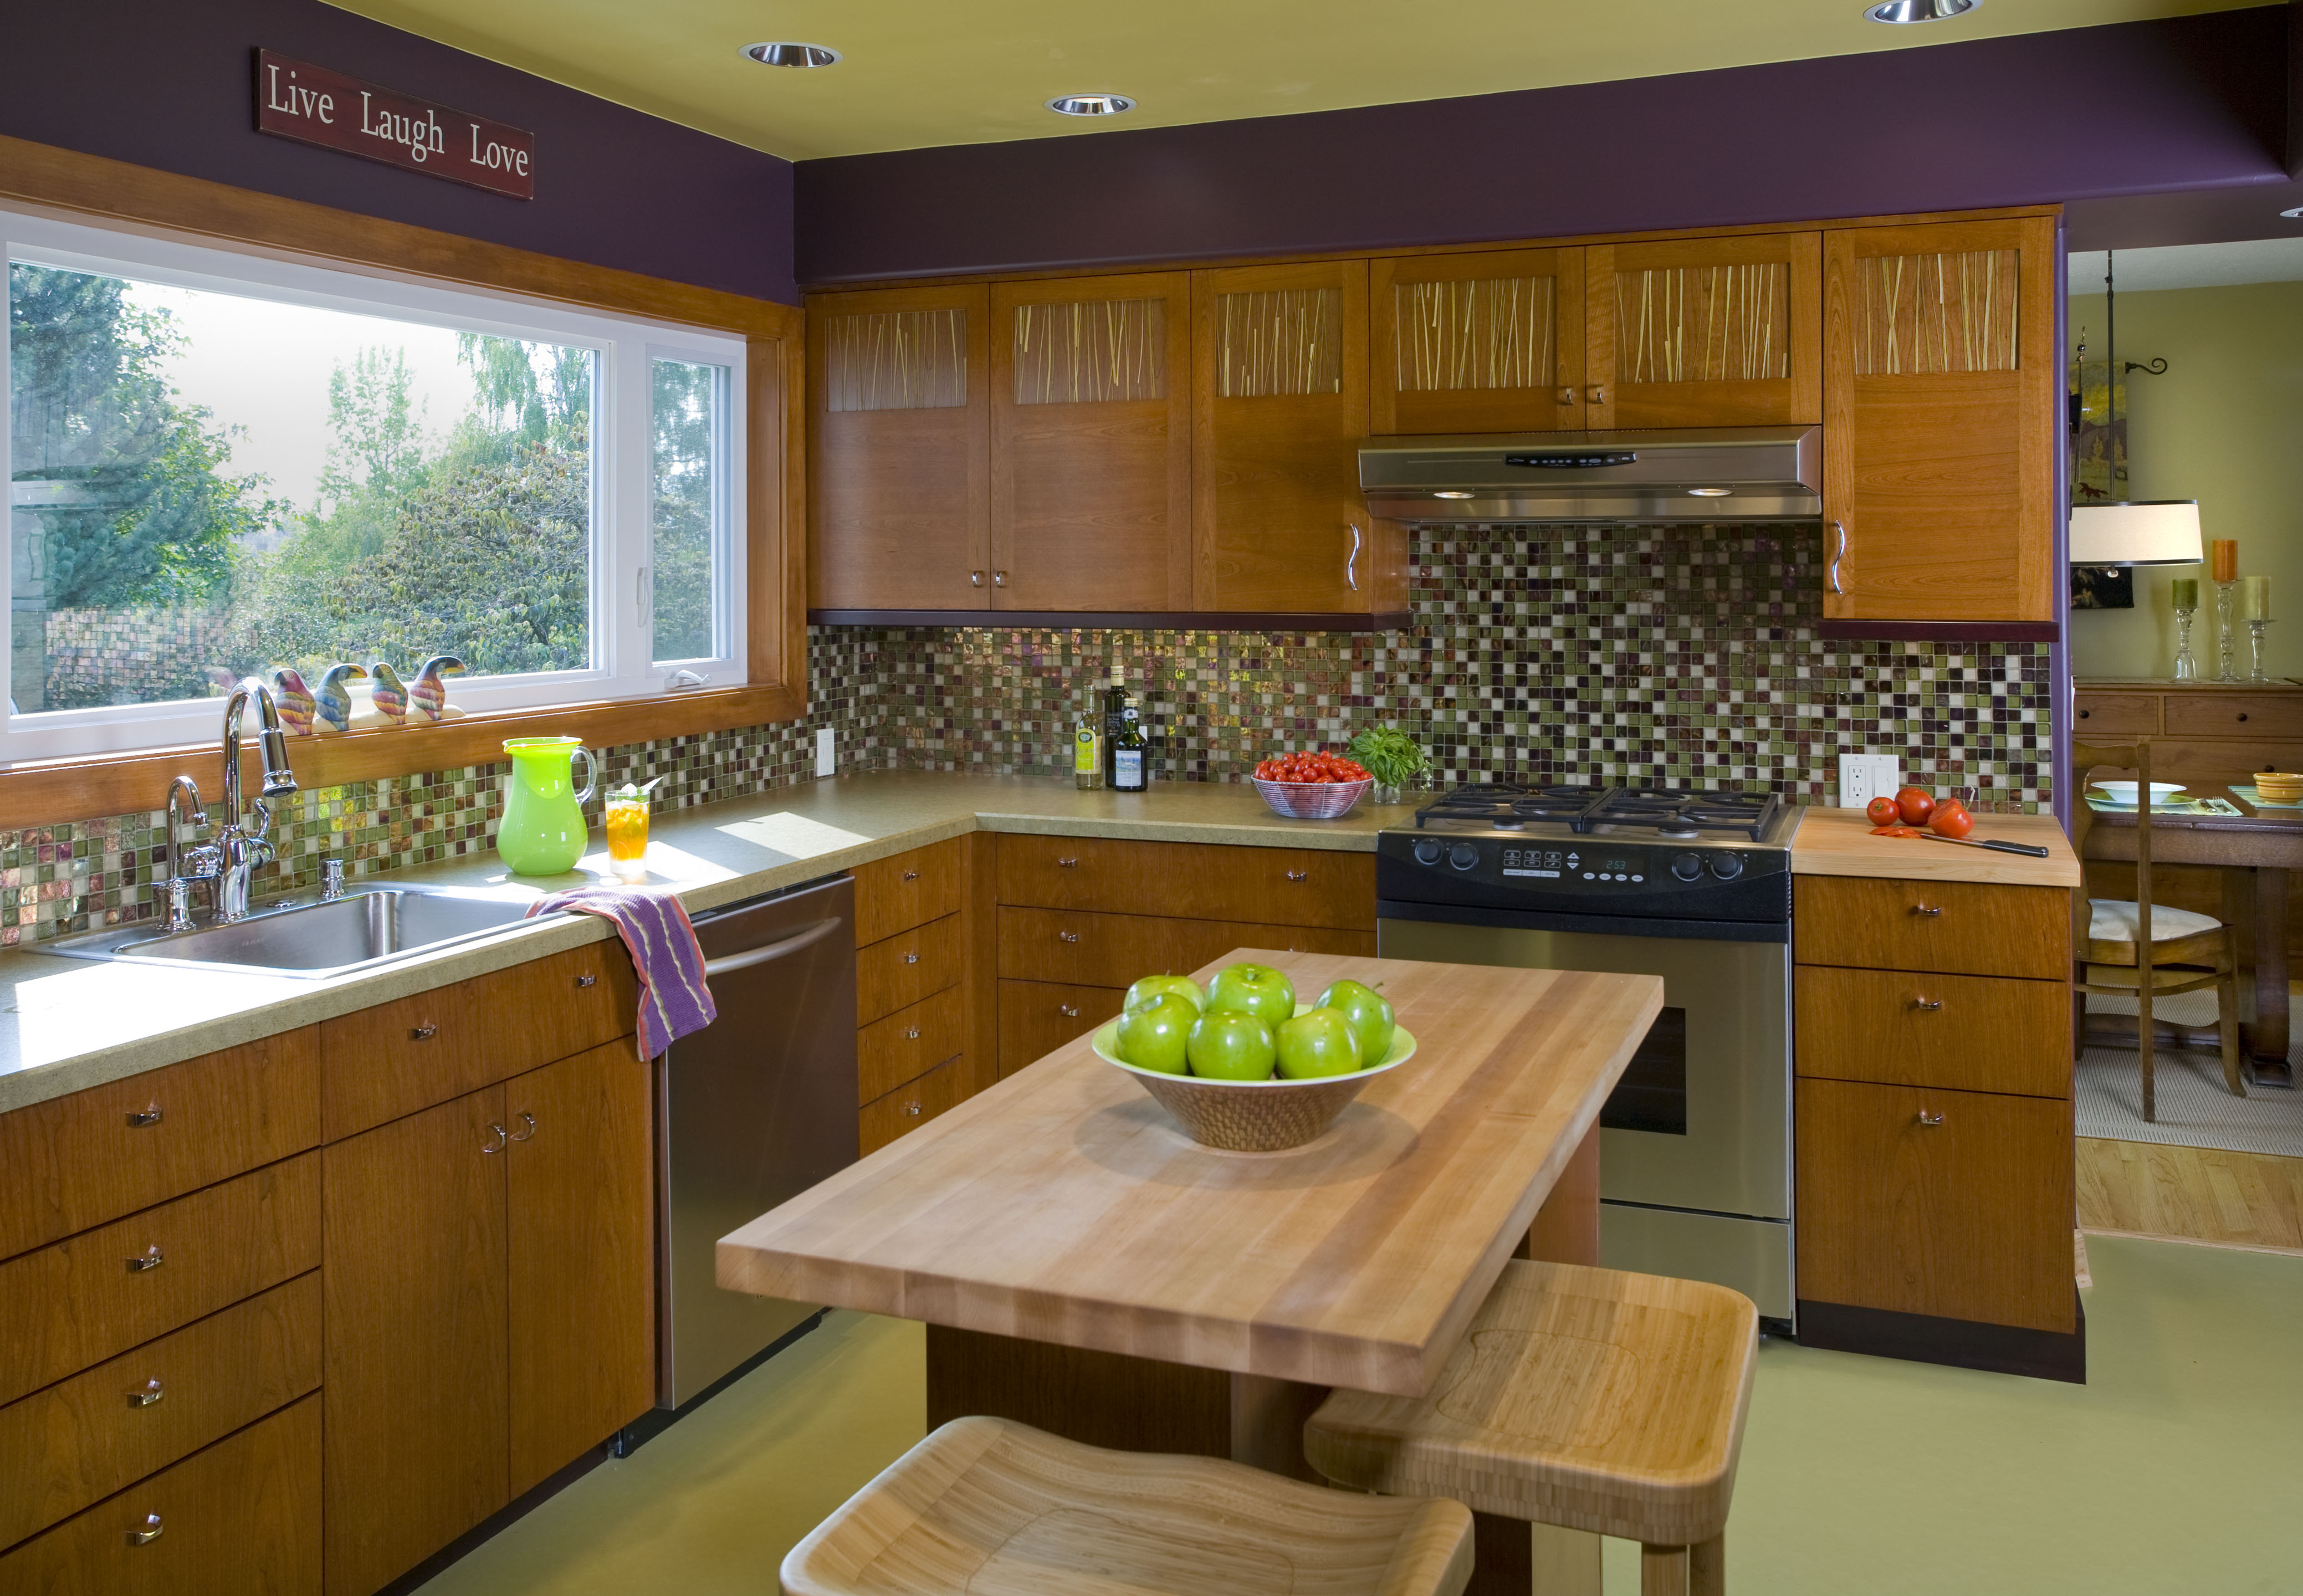 Beau Neil Kelly Cabinets Installation ShotUpper Cabinets Transitions Line And  Lower Cabinets Signature Line